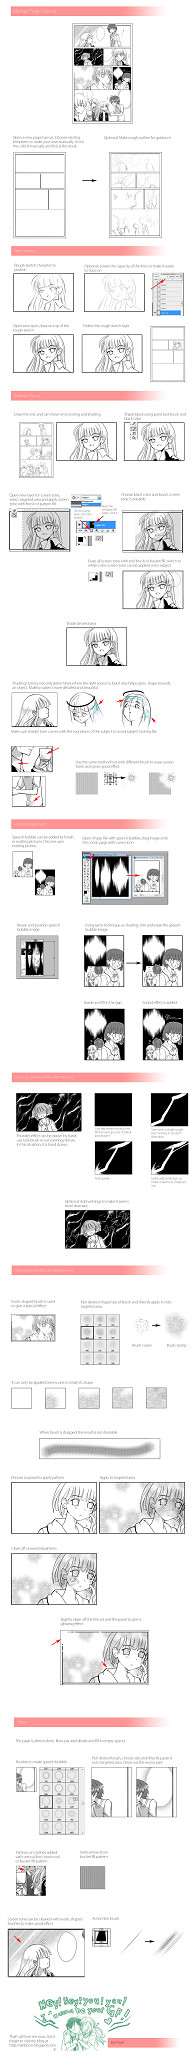 Manga page Tutorial PREVIEW by airibbon